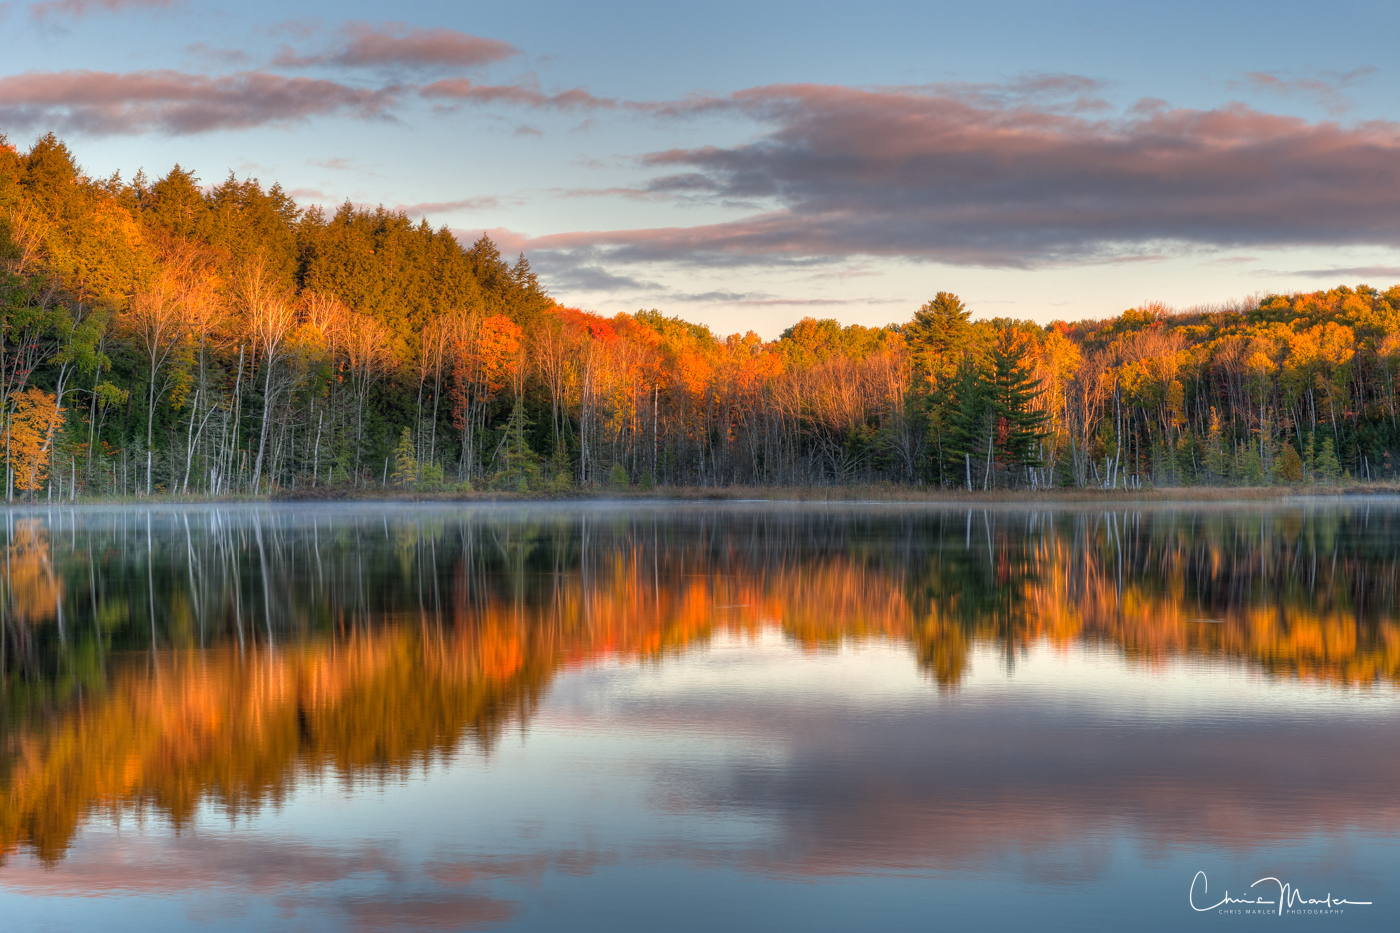 Michigan's Upper Peninsula has some of the best fall foliage you will ever see.  It's no wonder leaf peepers flock to this...